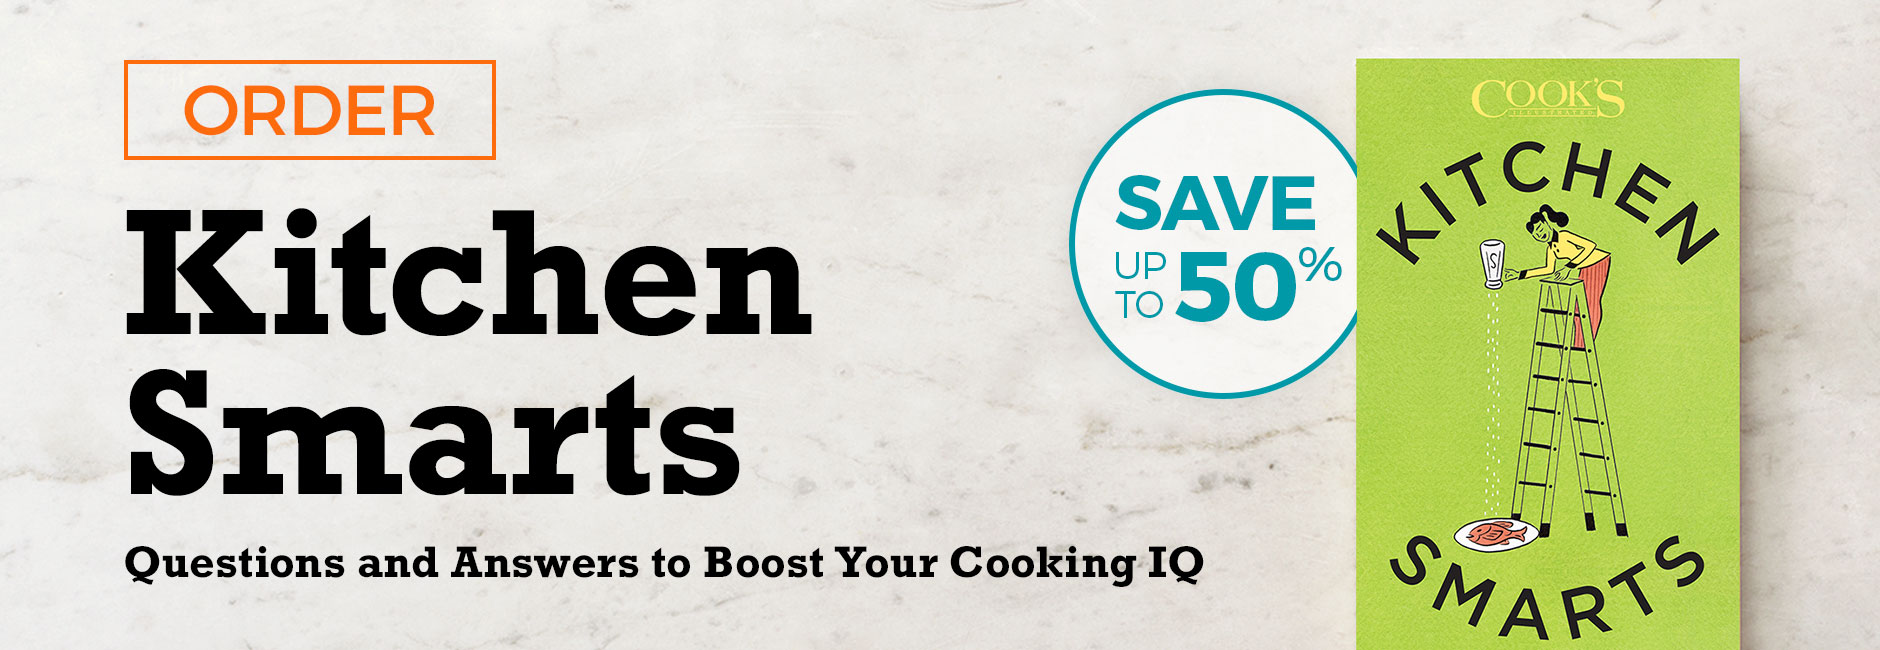 kitchen smarts questions and answers to boost your cooking iq